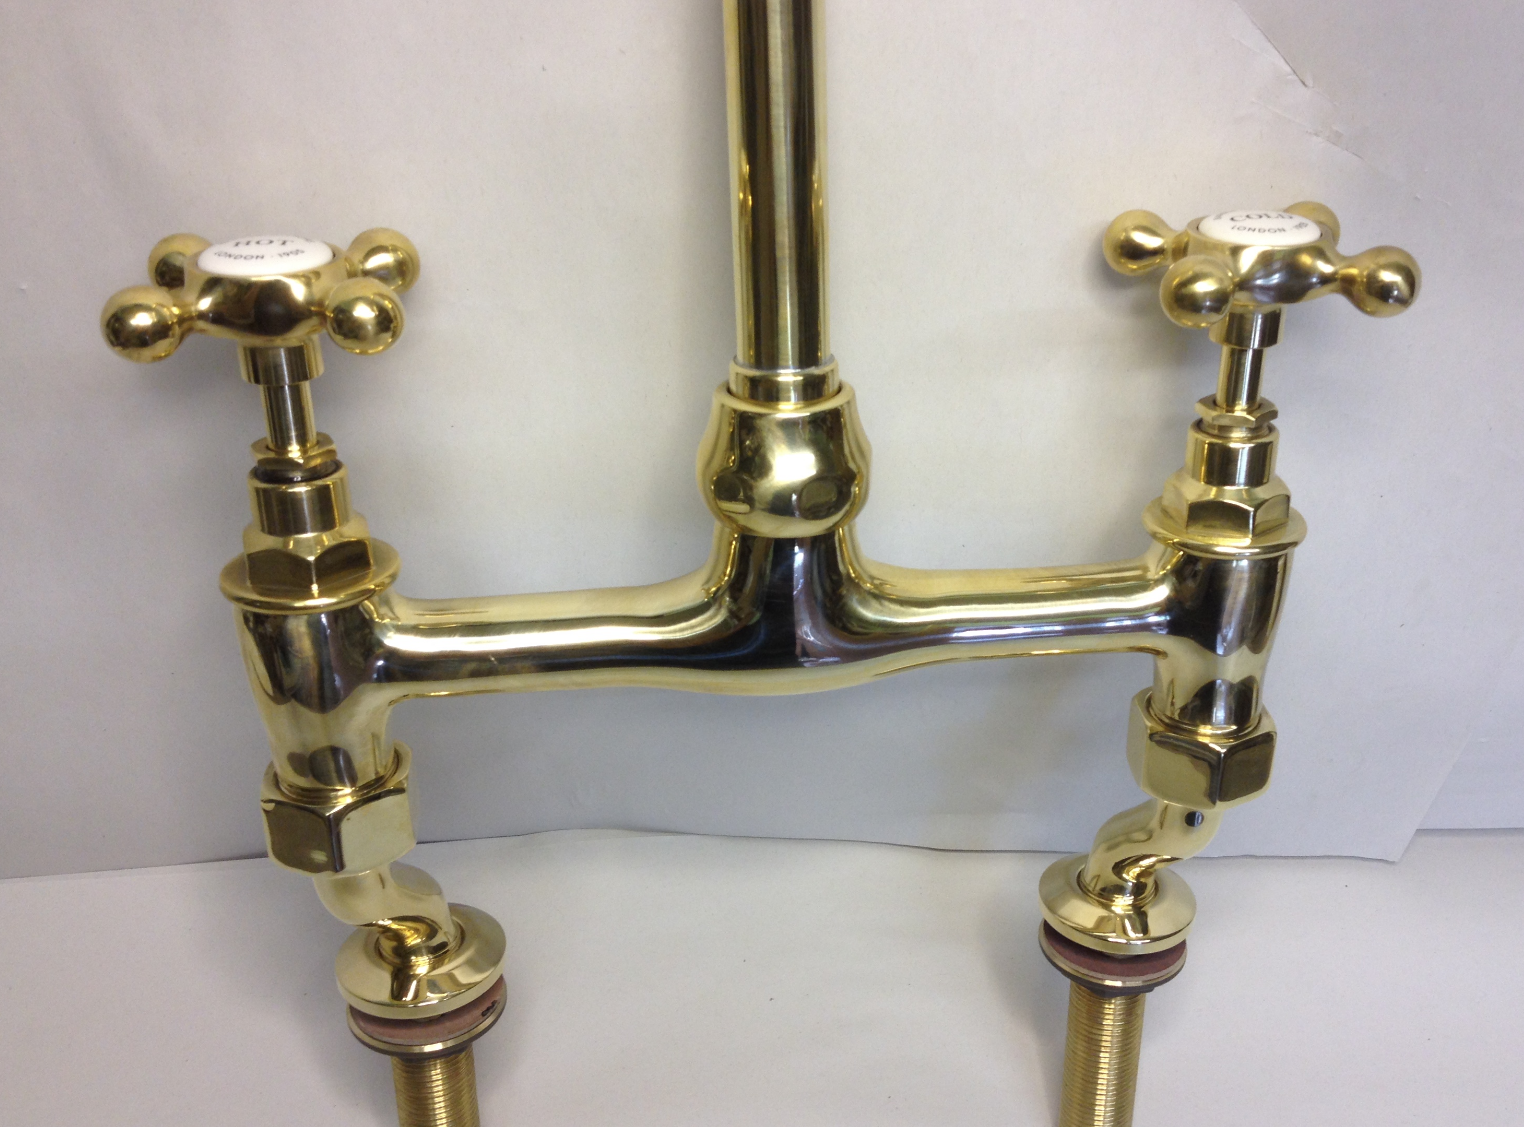 Kitchen bridge mixer taps in polished brass – FOR SALE.